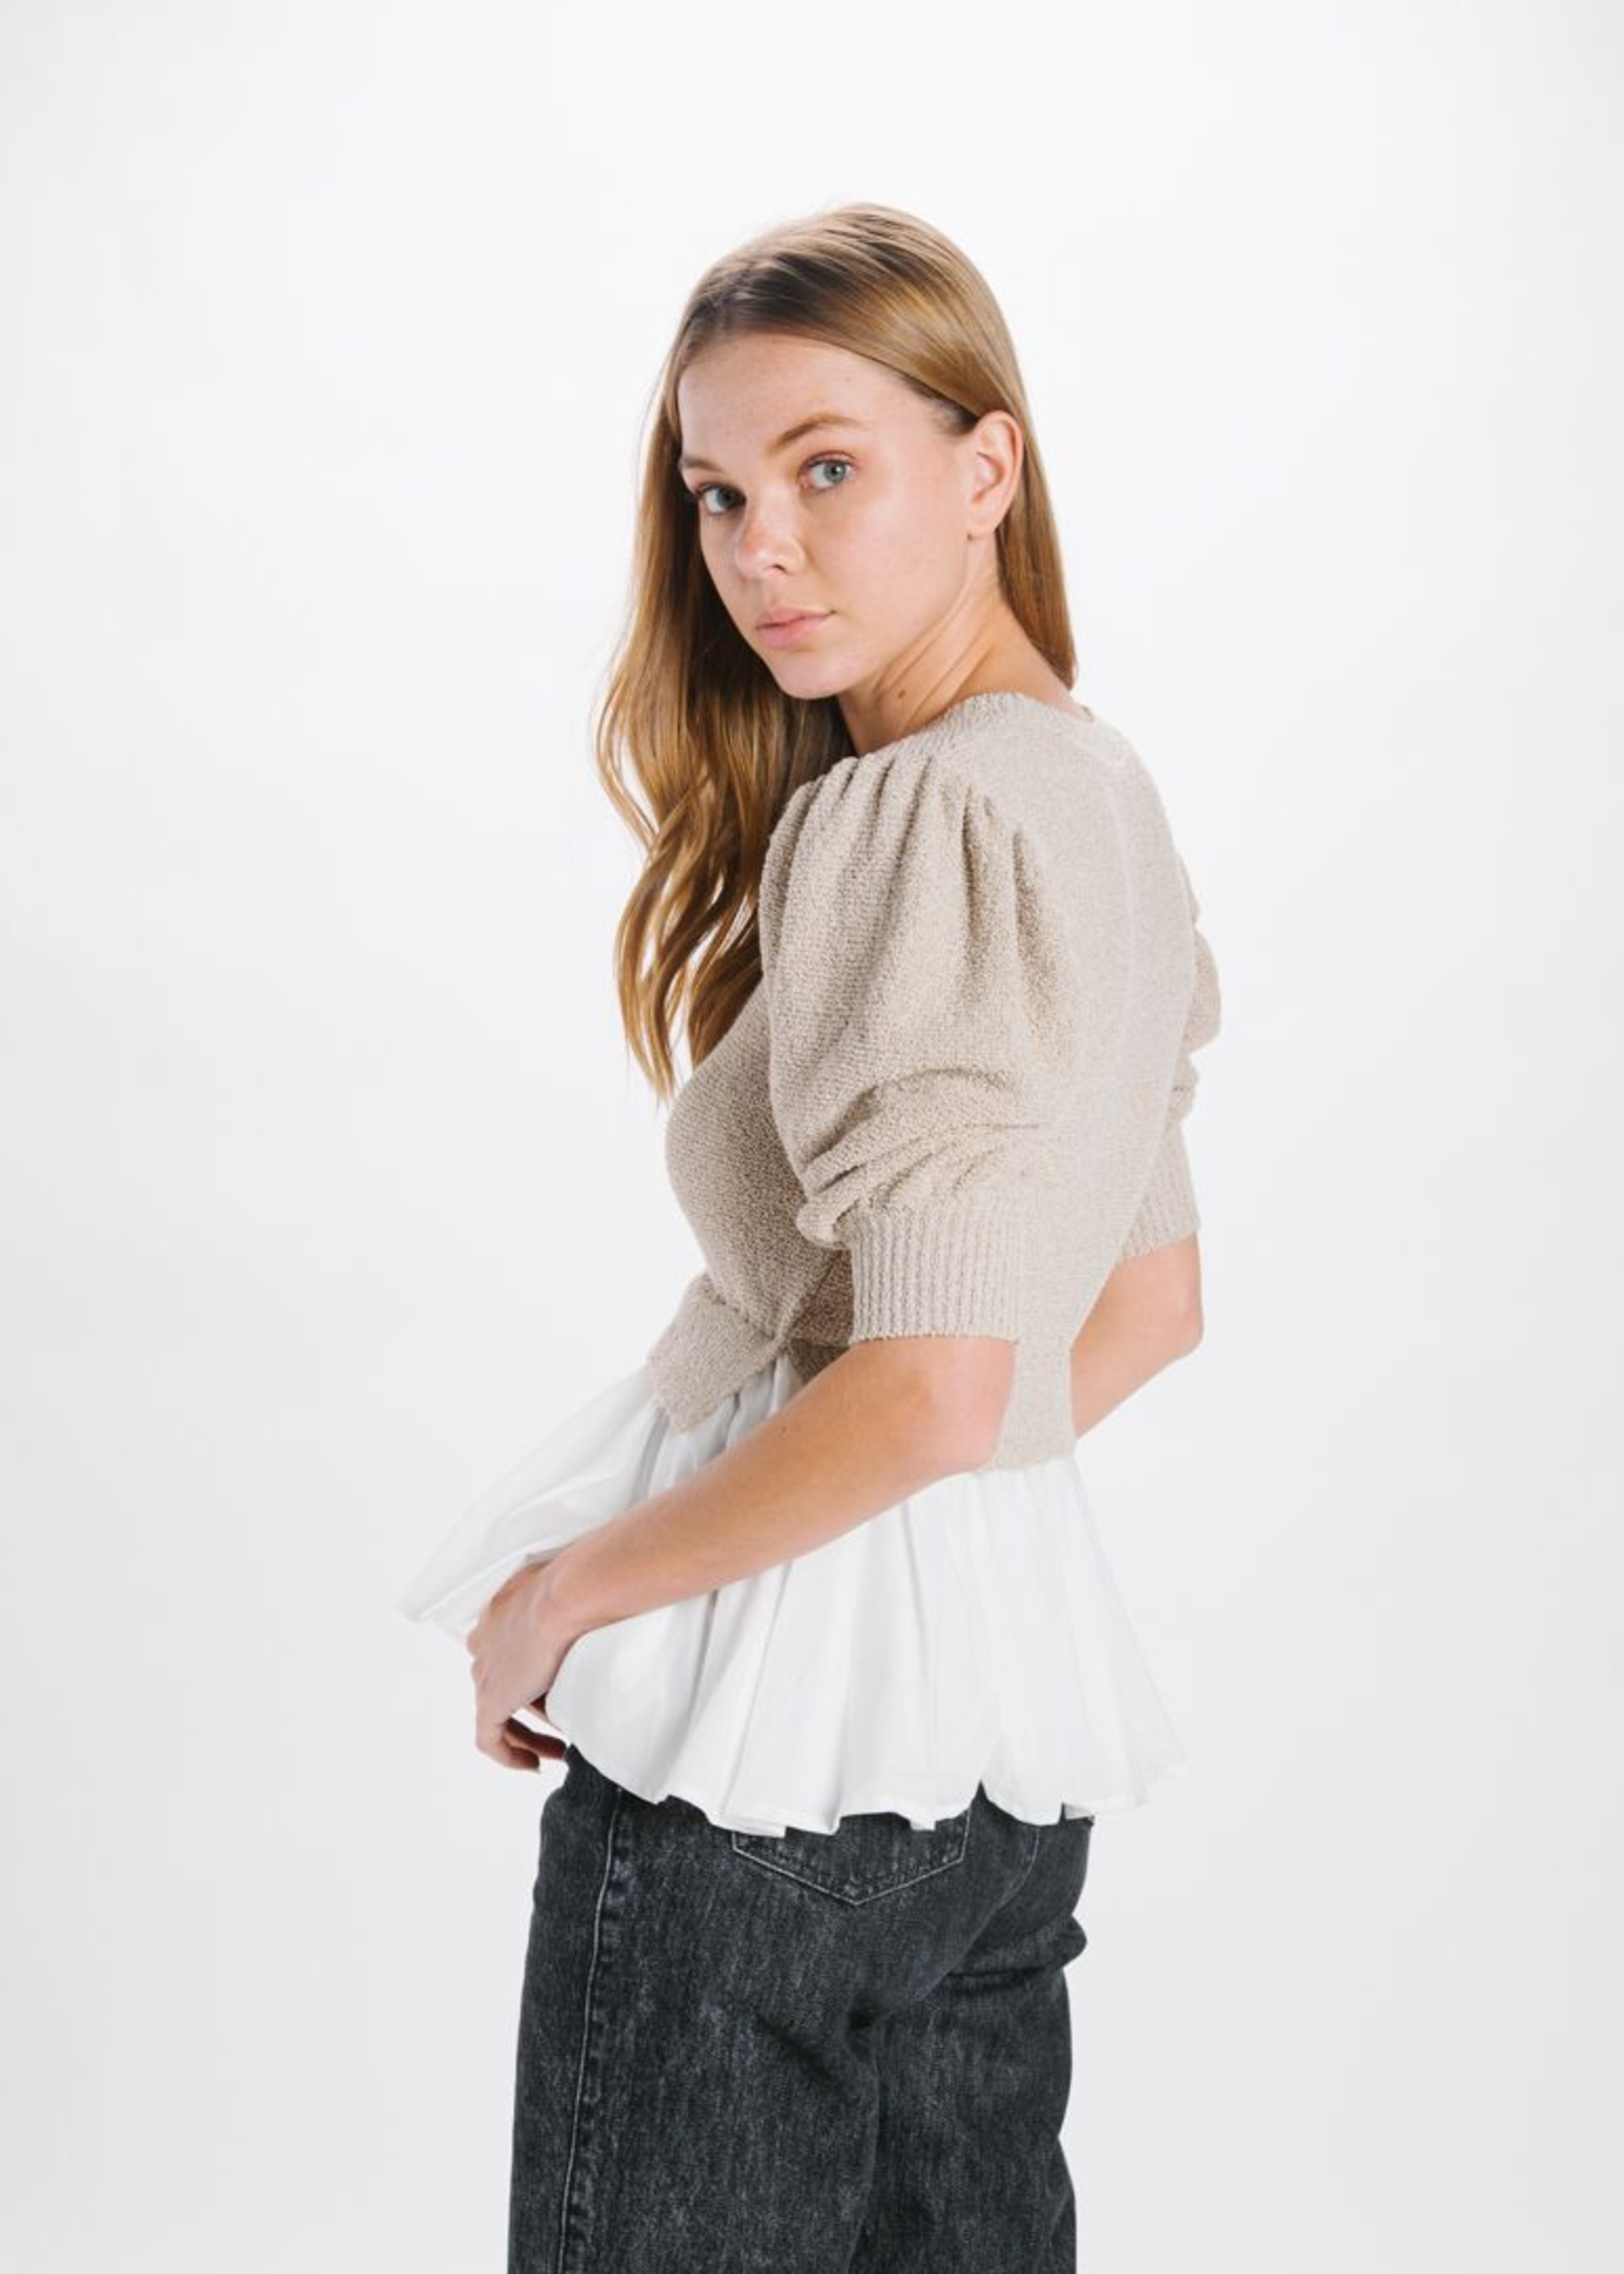 Elitaire Boutique Mixed Media Top in Natural